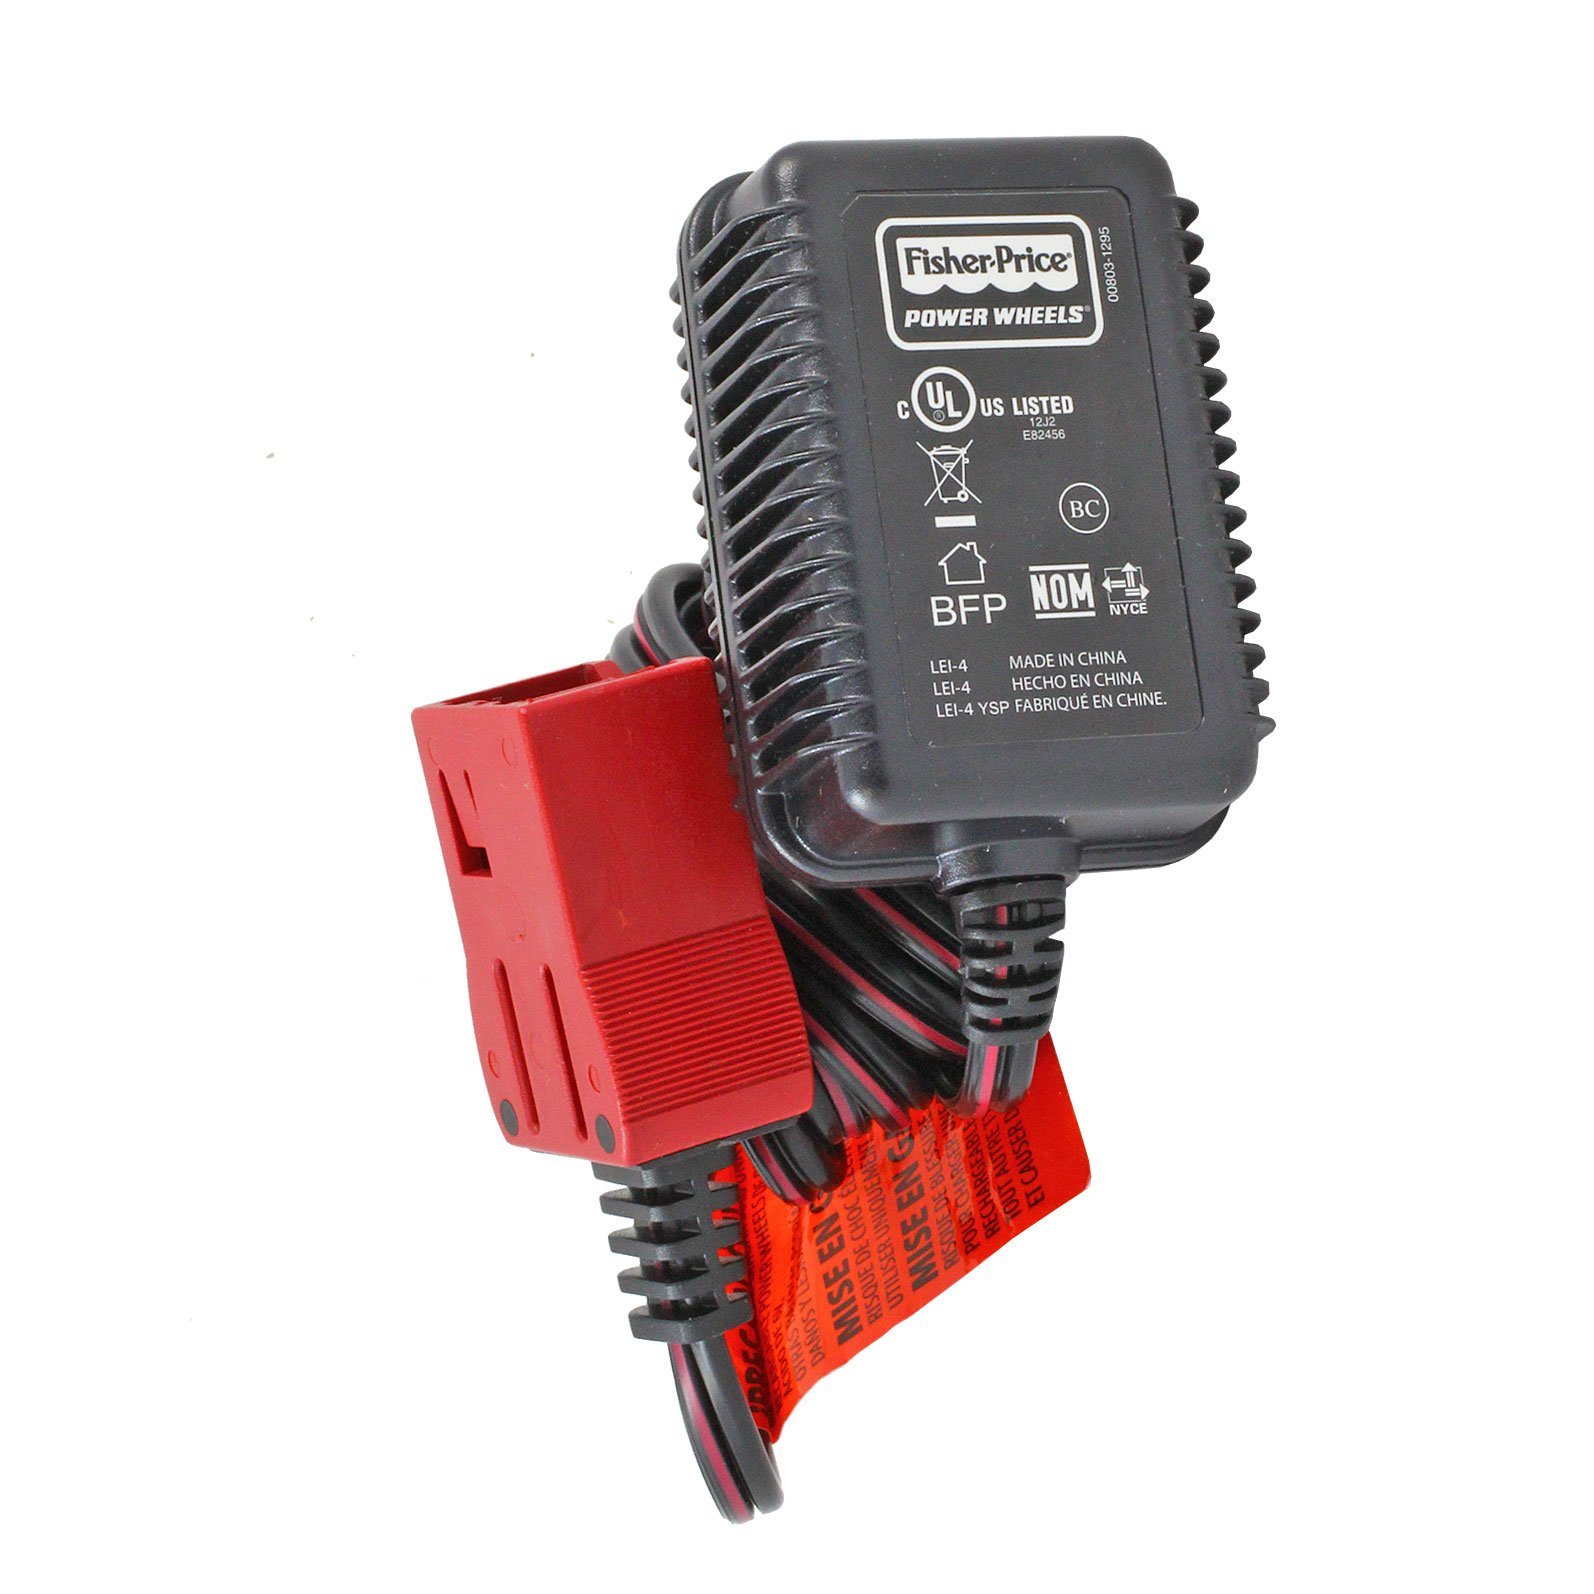 6 Volt A Plug Power Wheels Battery Charger For Red